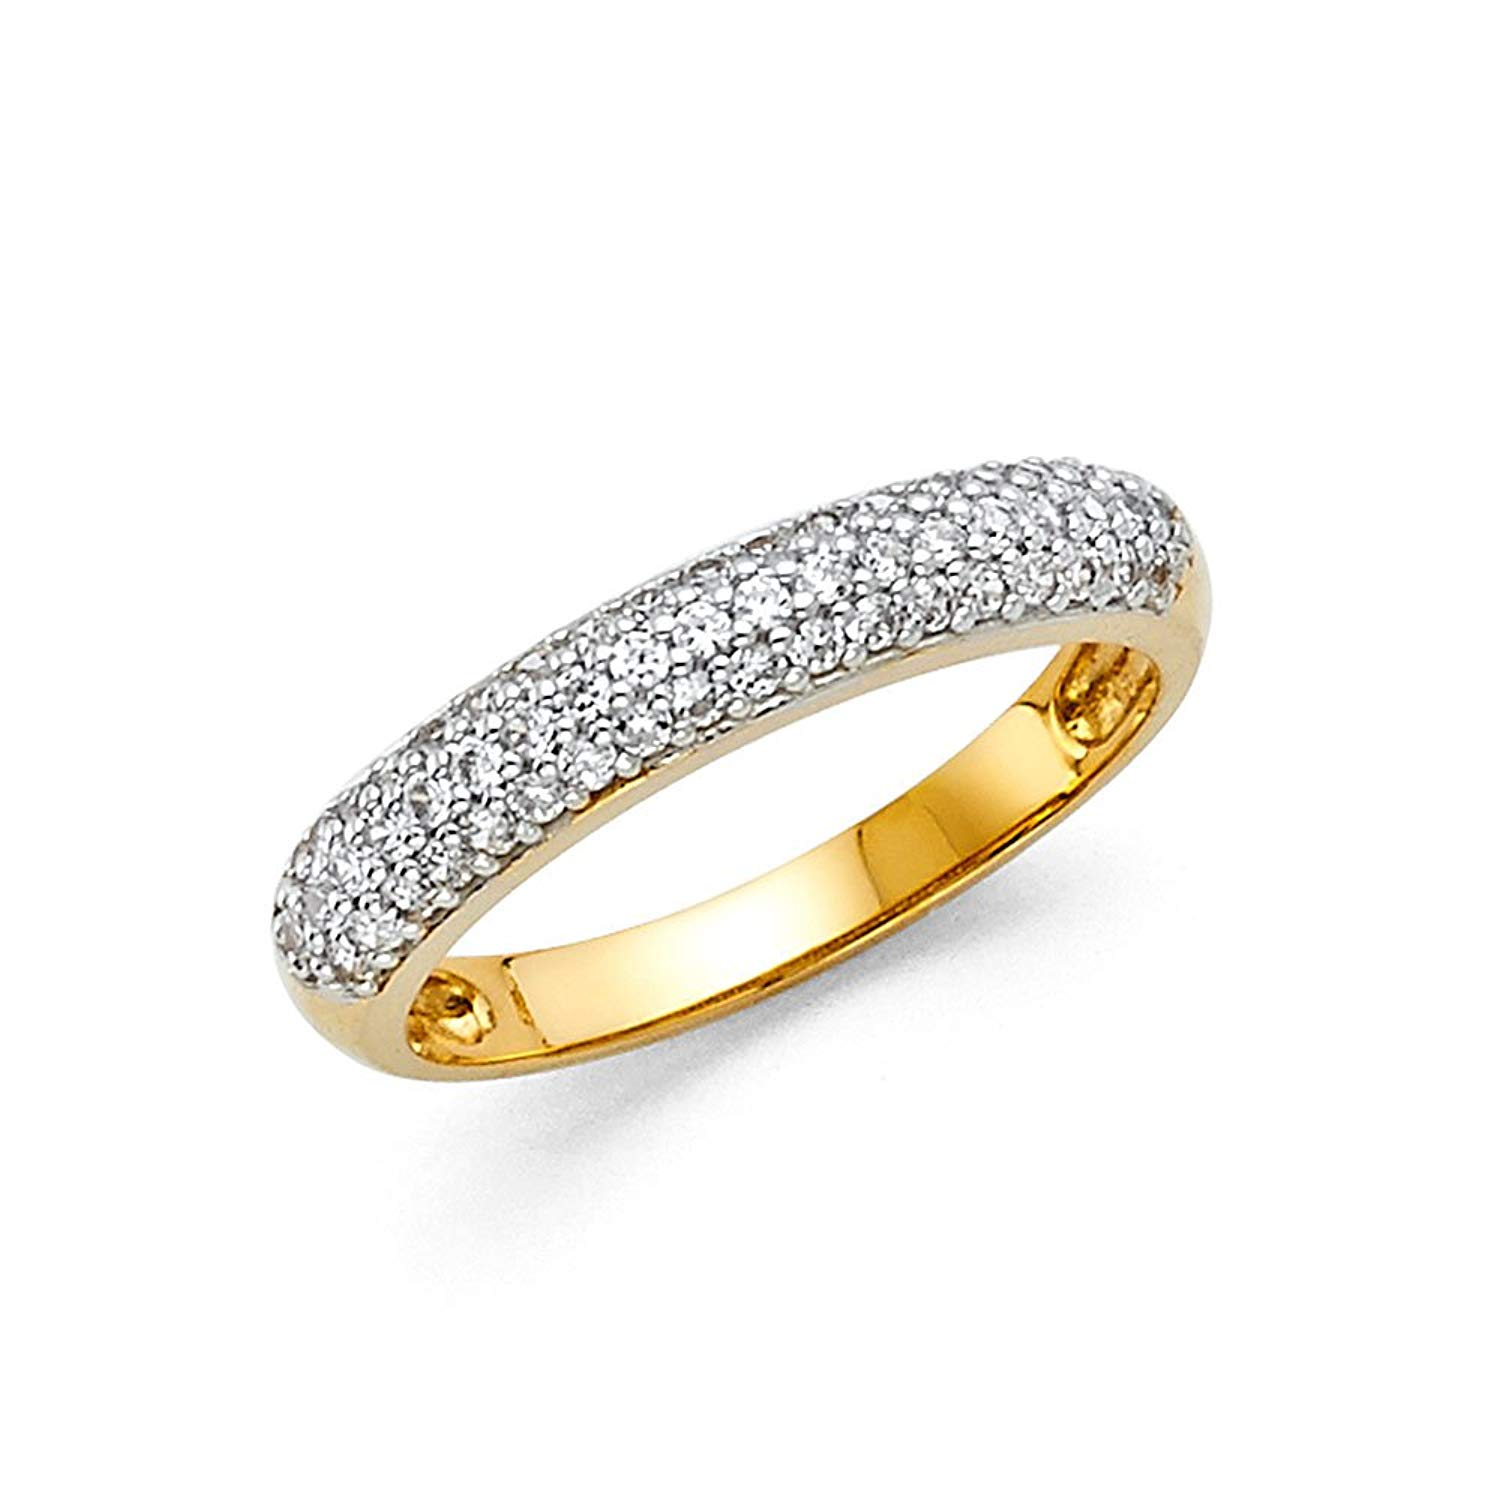 Round CZ Wedding Band 14k Yellow OR White Gold Bridal CZ Dome Band Anniversary CZ Ring Pave Set Solid